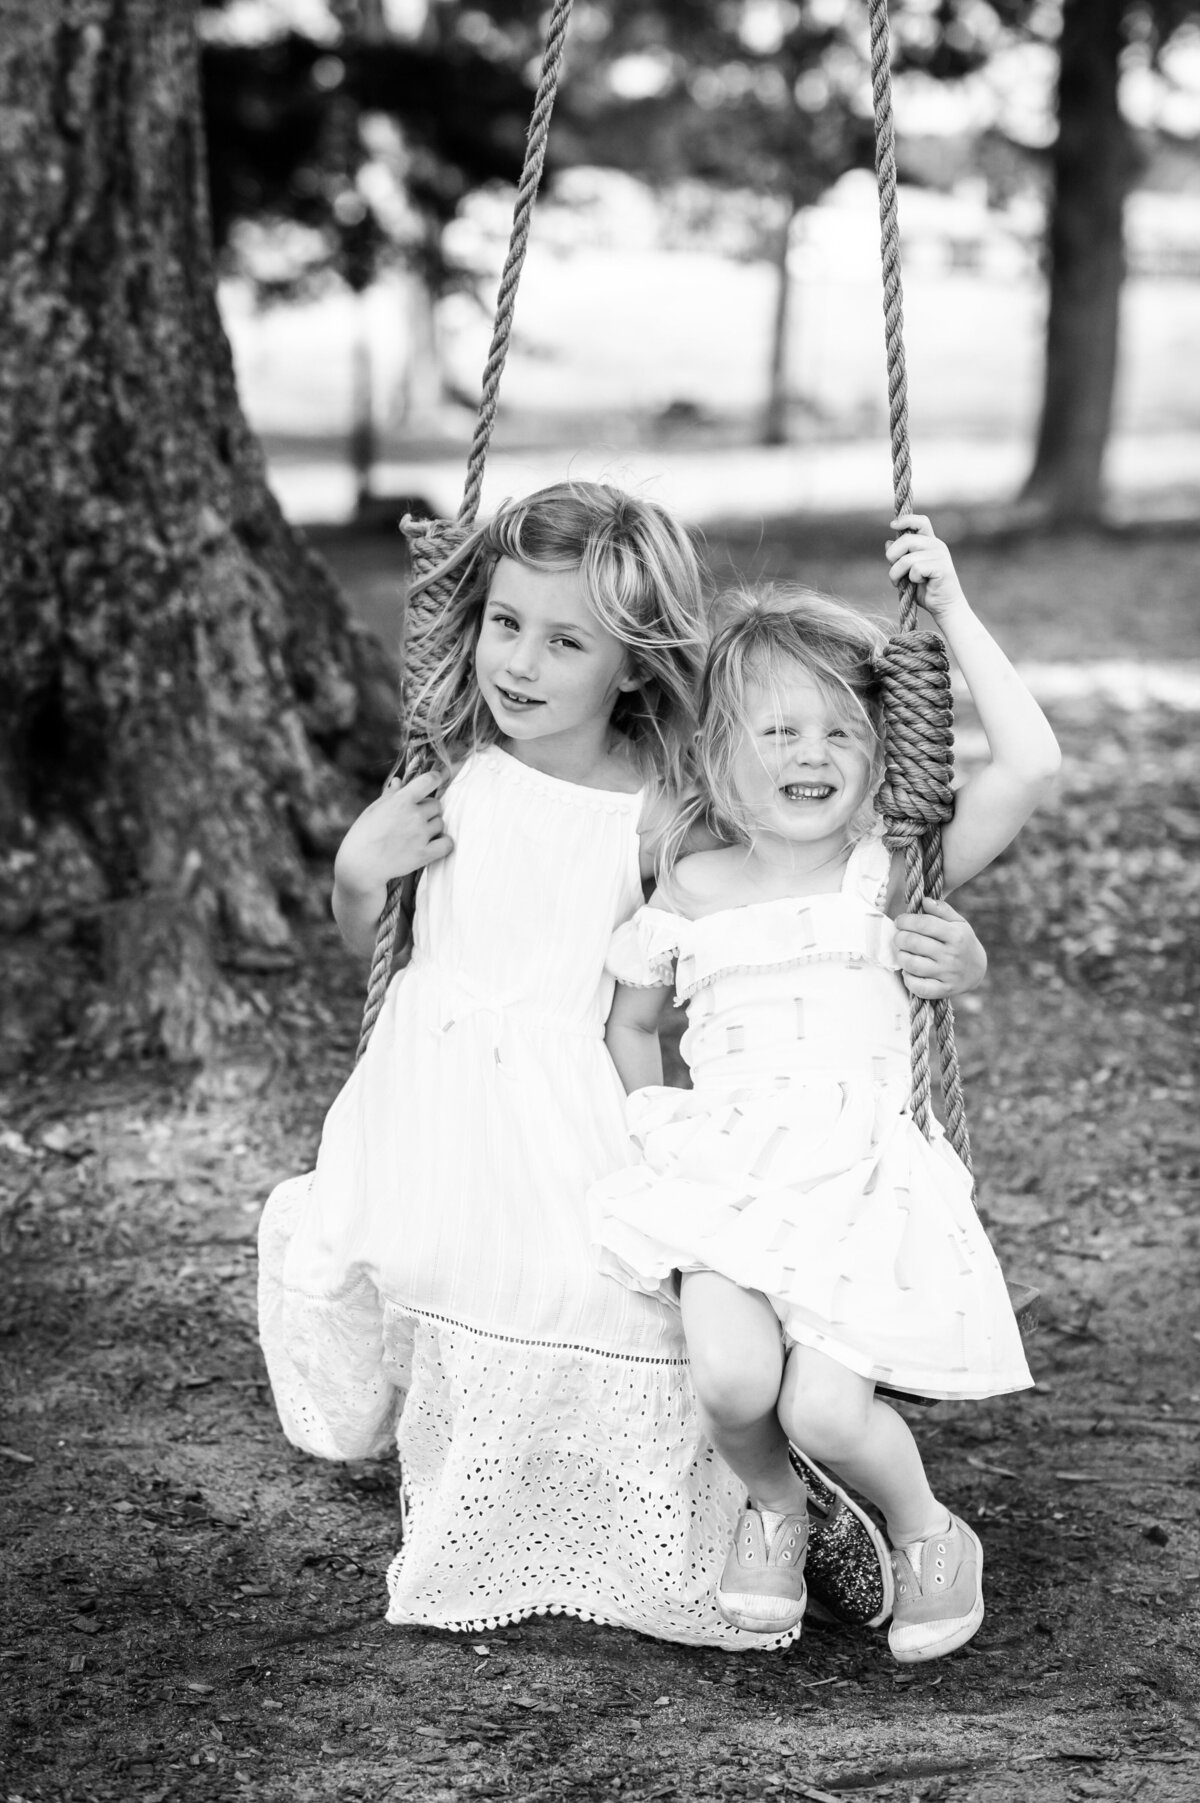 Child-Colleen-Putman-Photography-135